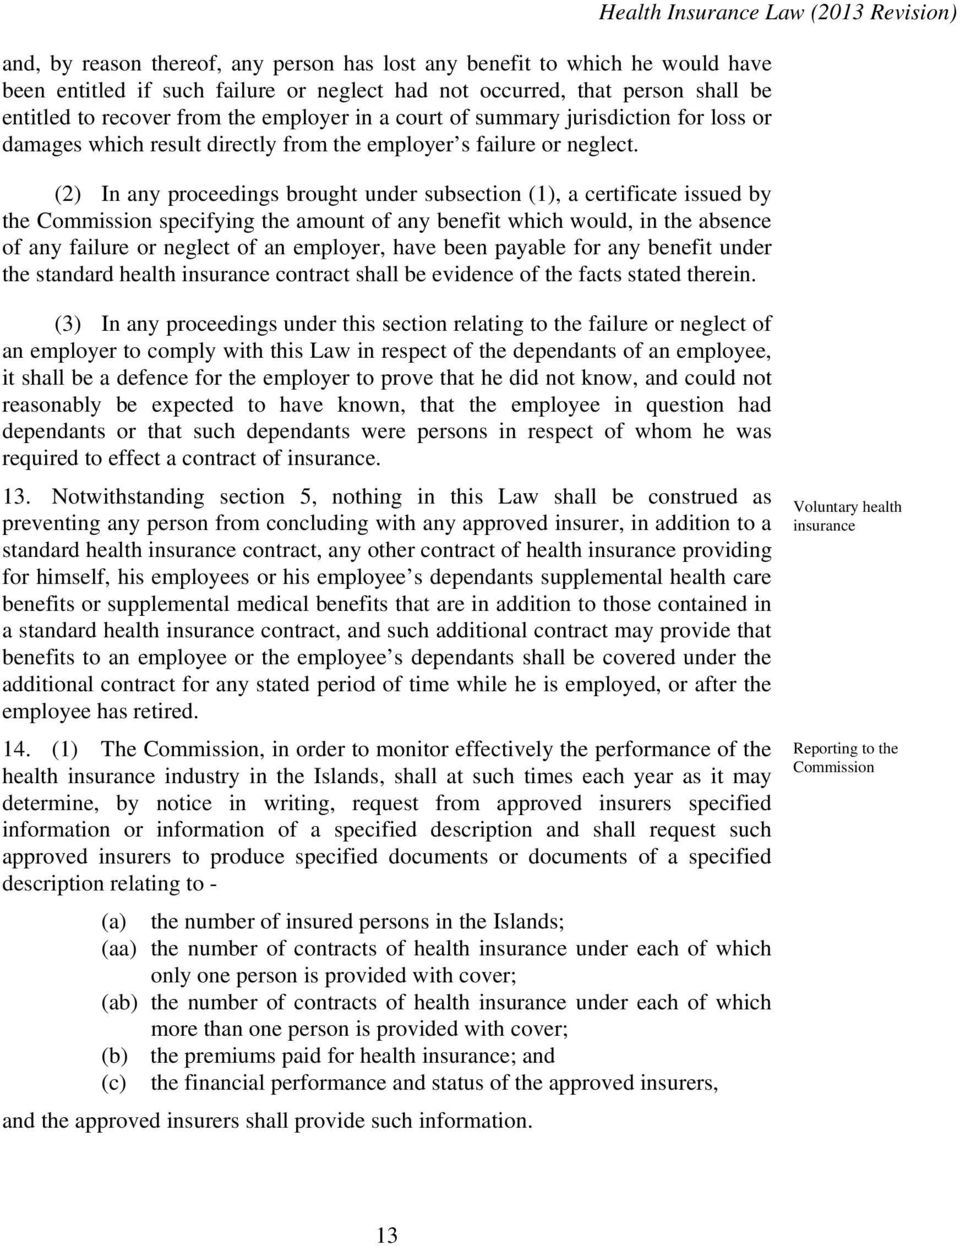 (2) In any proceedings brought under subsection (1), a certificate issued by the Commission specifying the amount of any benefit which would, in the absence of any failure or neglect of an employer,